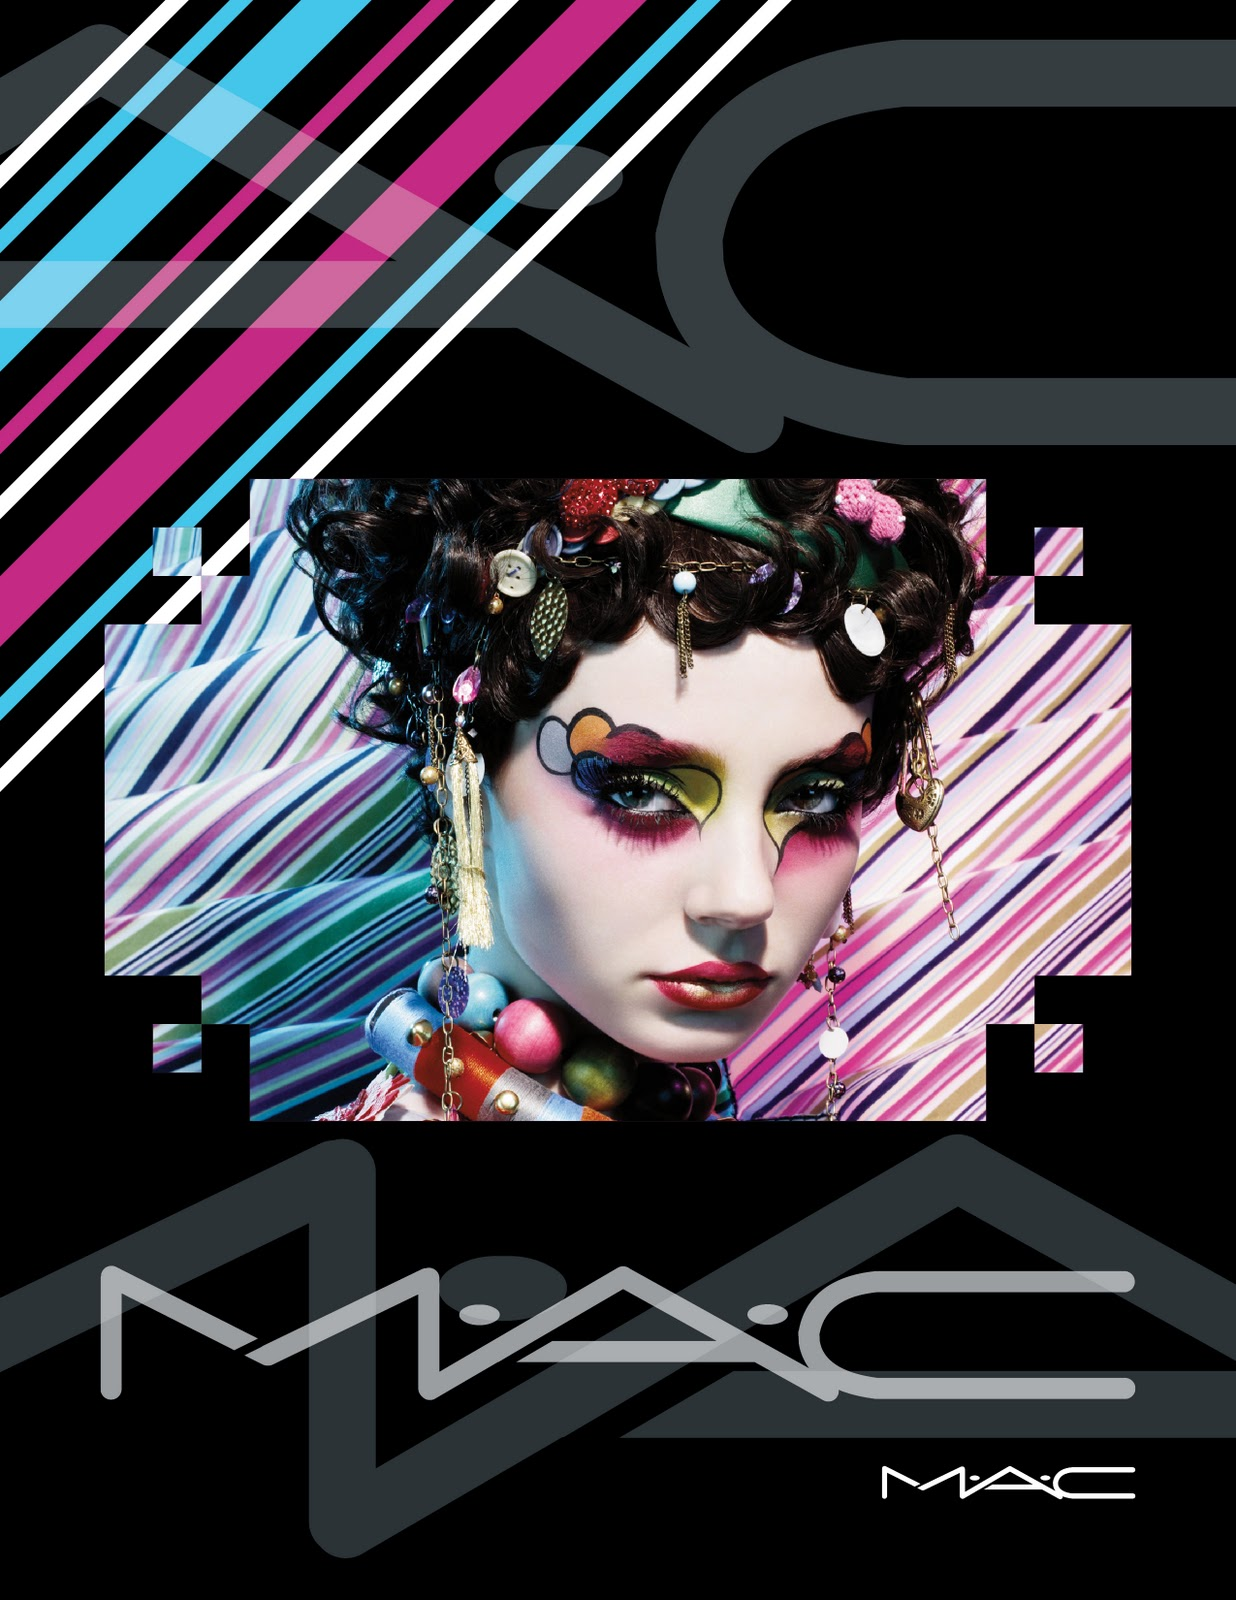 Branding By Daga: MAC Cosmetics Ad